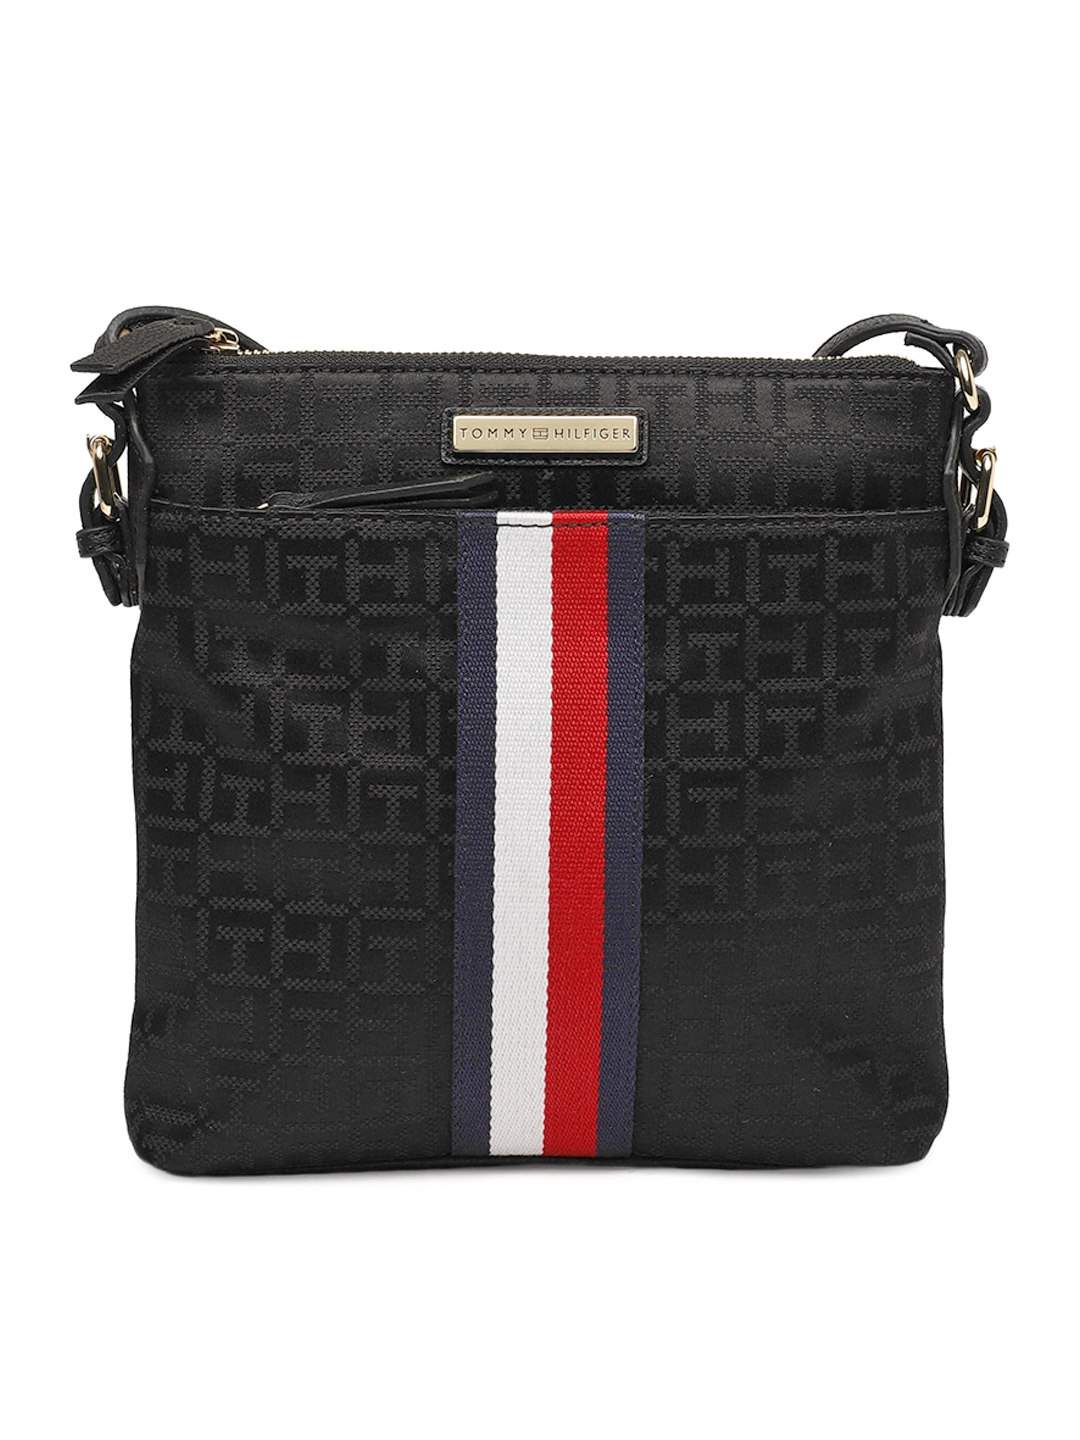 1716e9e3ecd Buy Tommy Hilfiger Black Printed Sling Bag - Handbags for Women ...